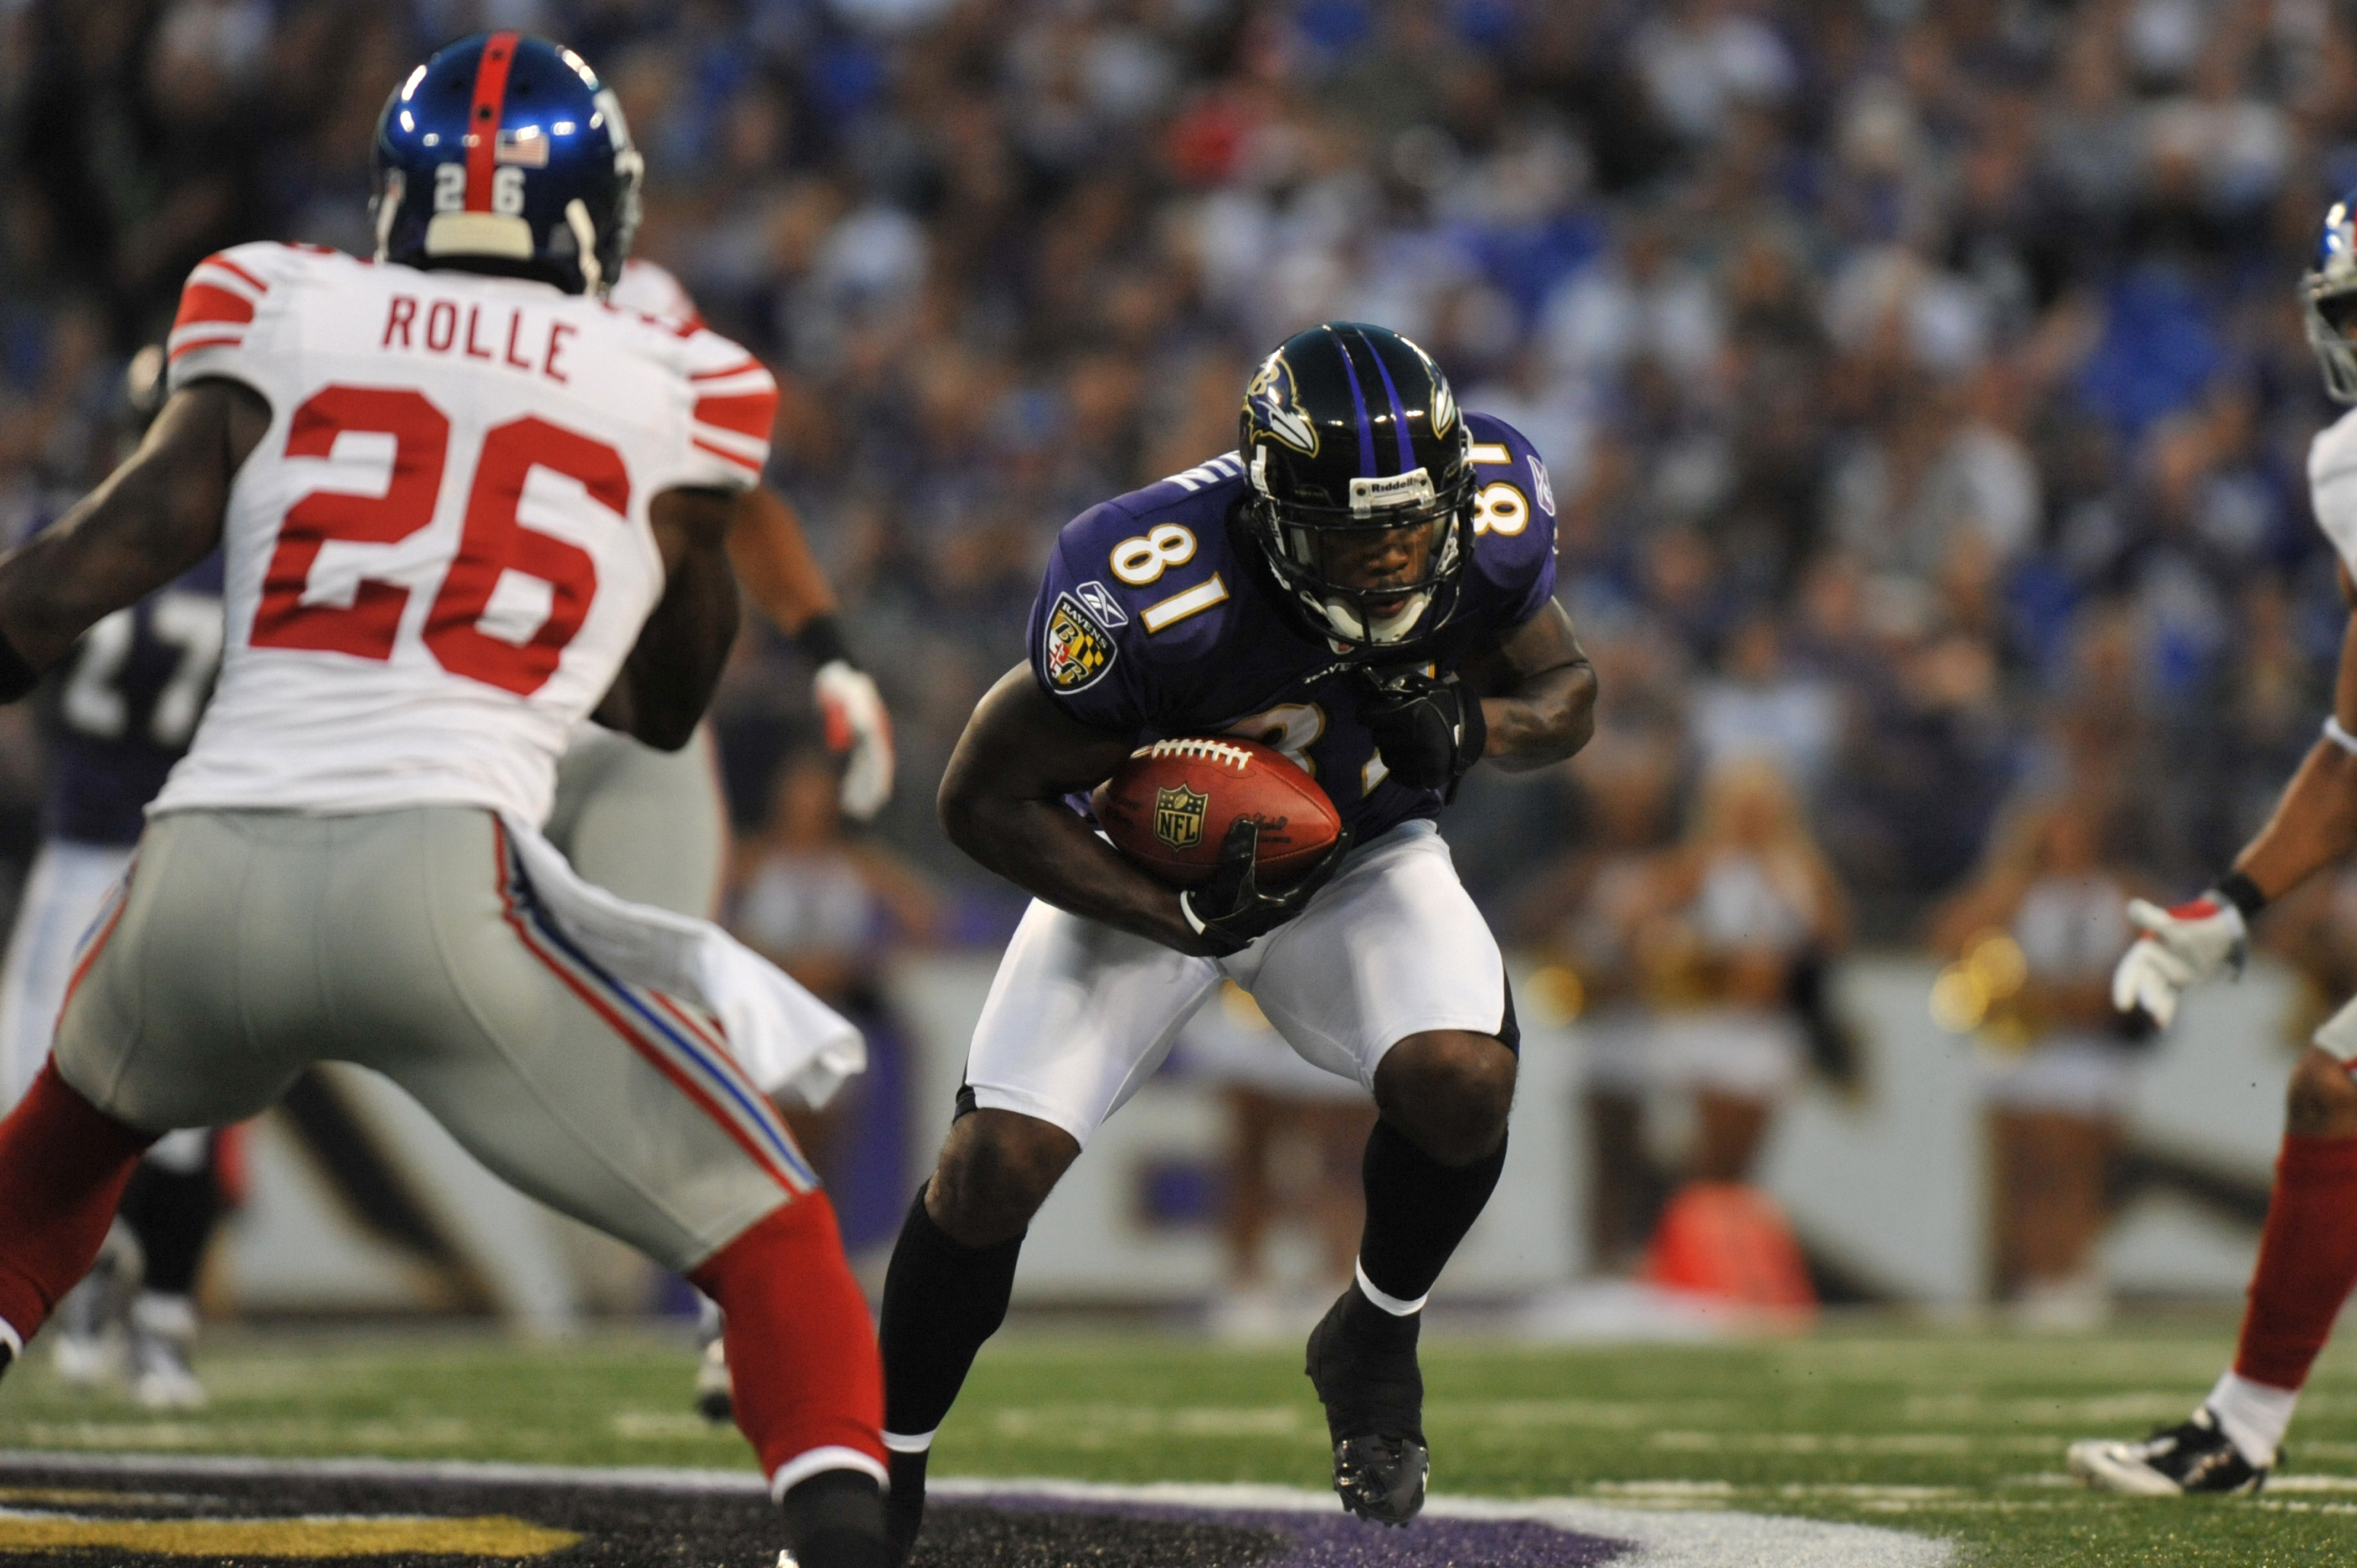 BALTIMORE - AUGUST 28:  Anquan Boldin #81 of the Baltimore Ravens makes a catch during the game against the New York Giants at M&T Bank Stadium on August 28, 2010 in Baltimore, Maryland. The Ravens lead the Giants 17-3. (Photo by Larry French/Getty Images